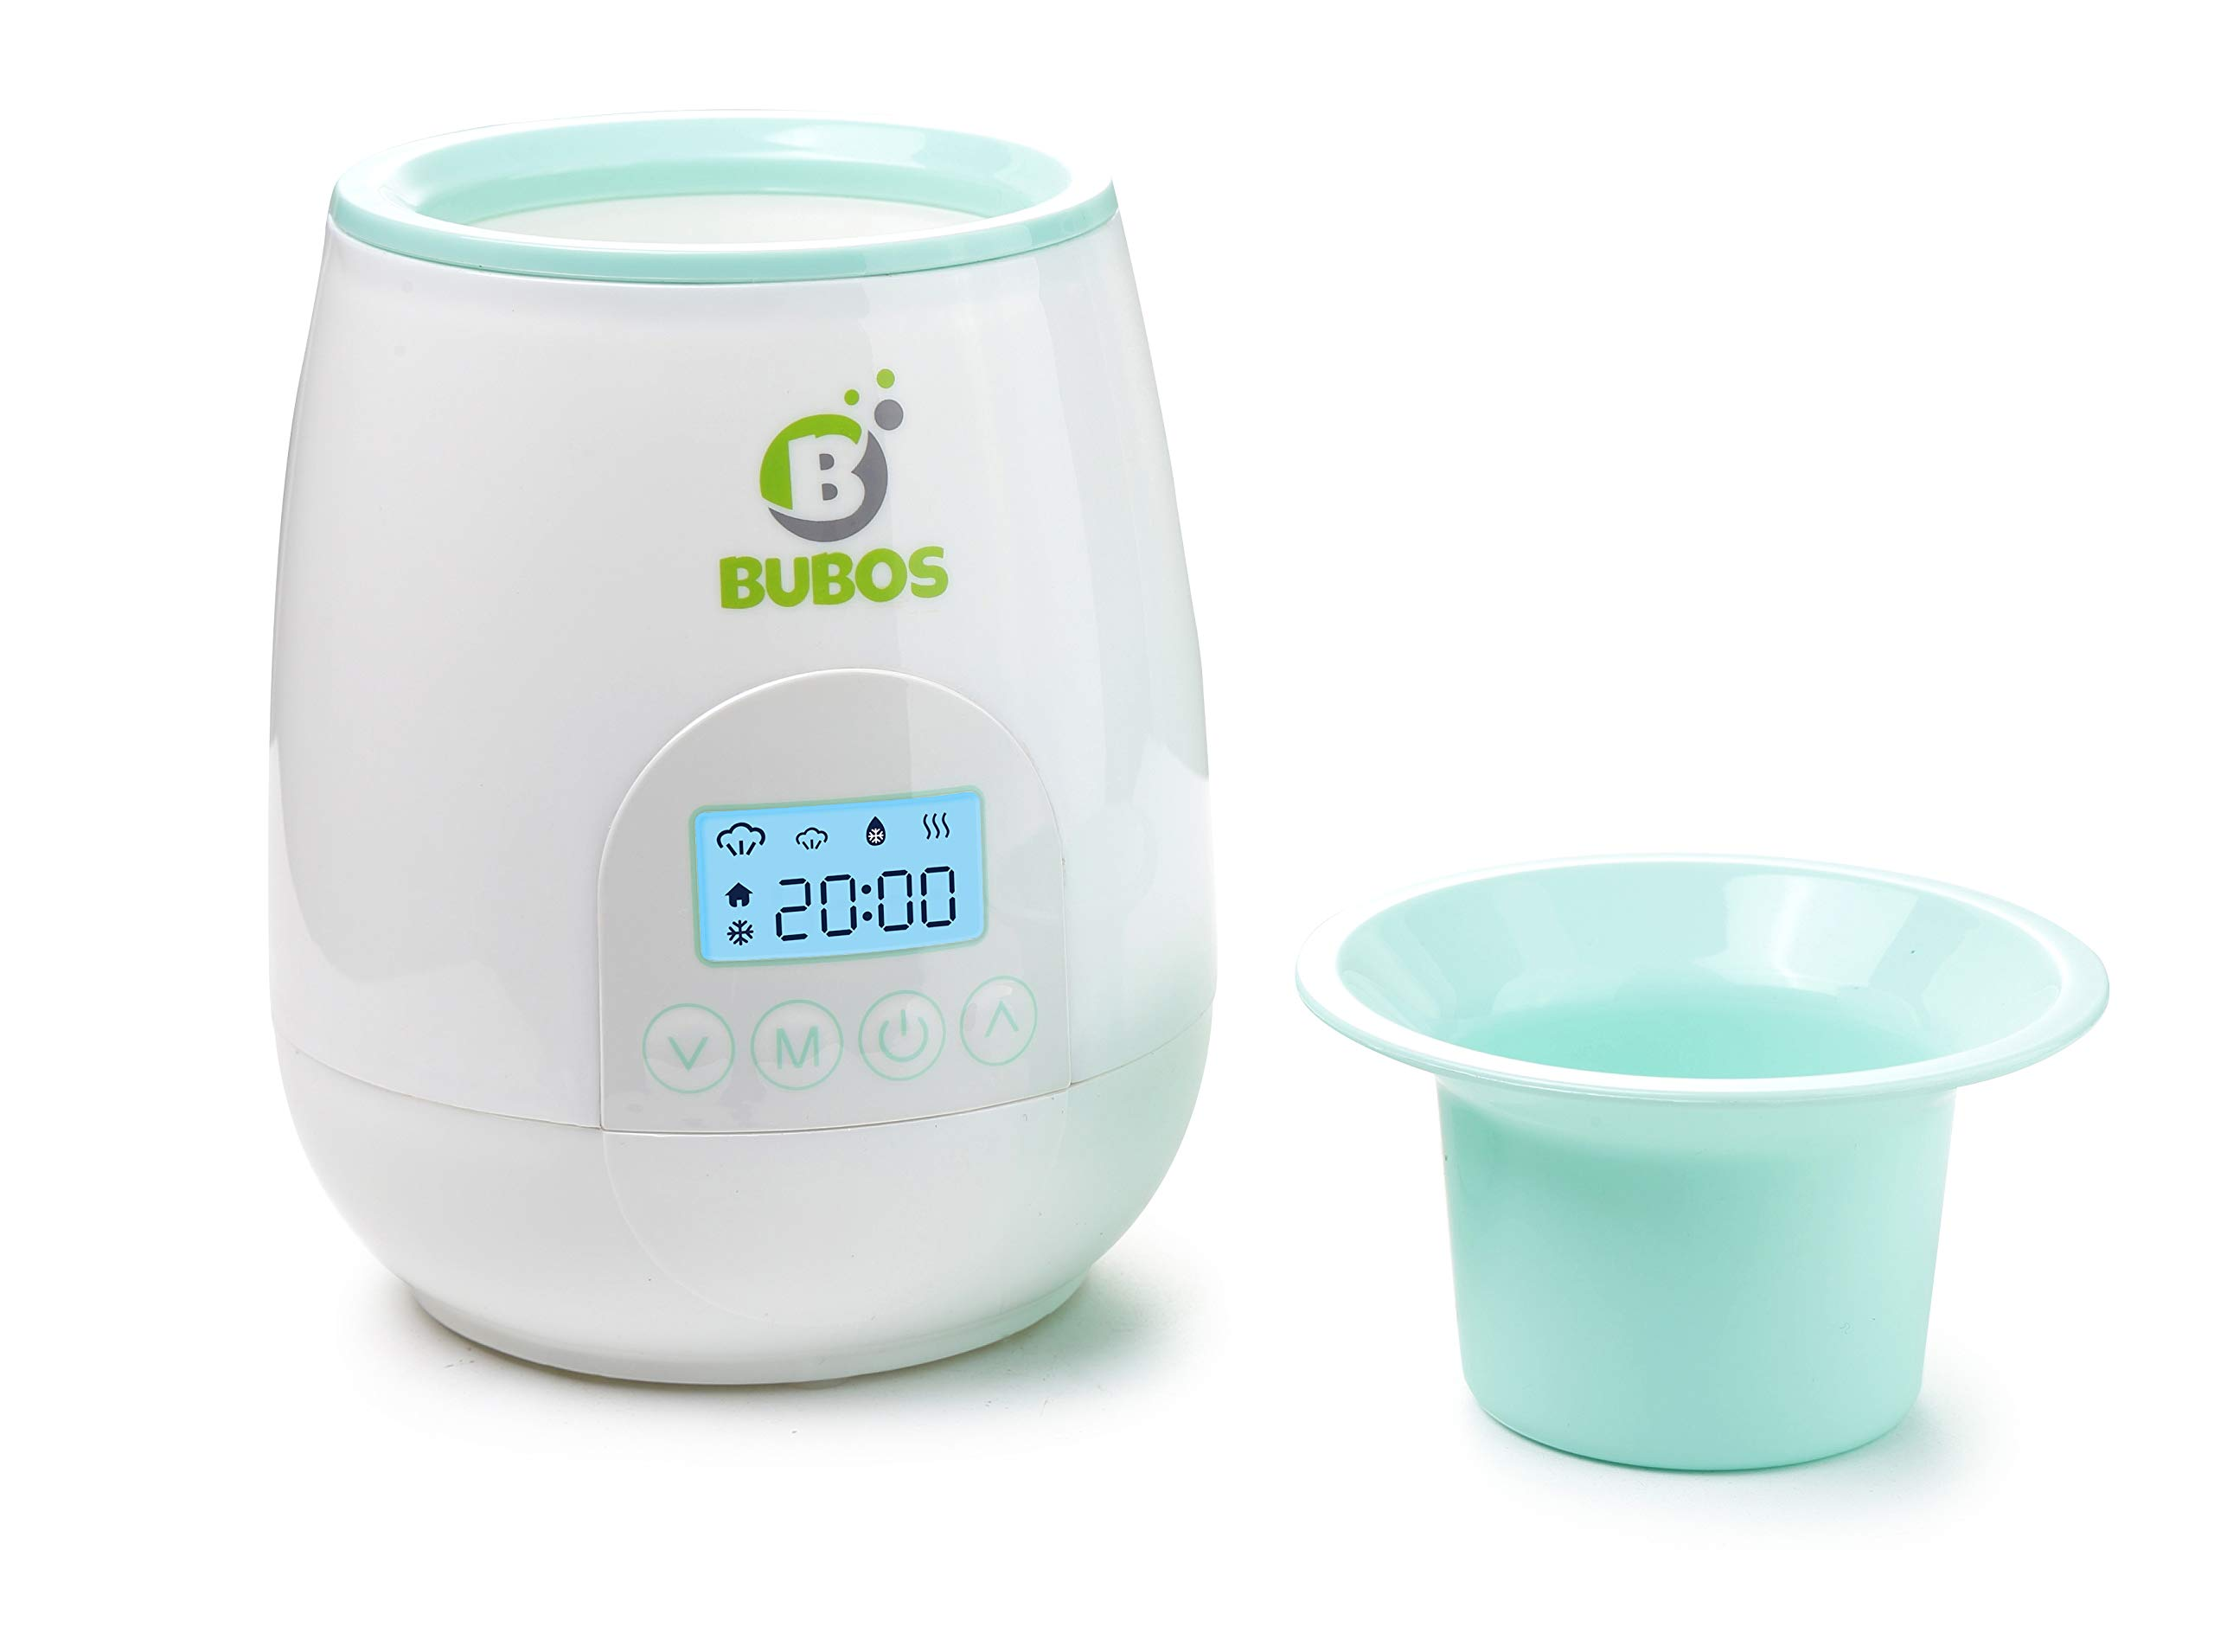 Bubos Smart Baby Bottle Warmer with Backlit LCD Real Time Display by B Bubos